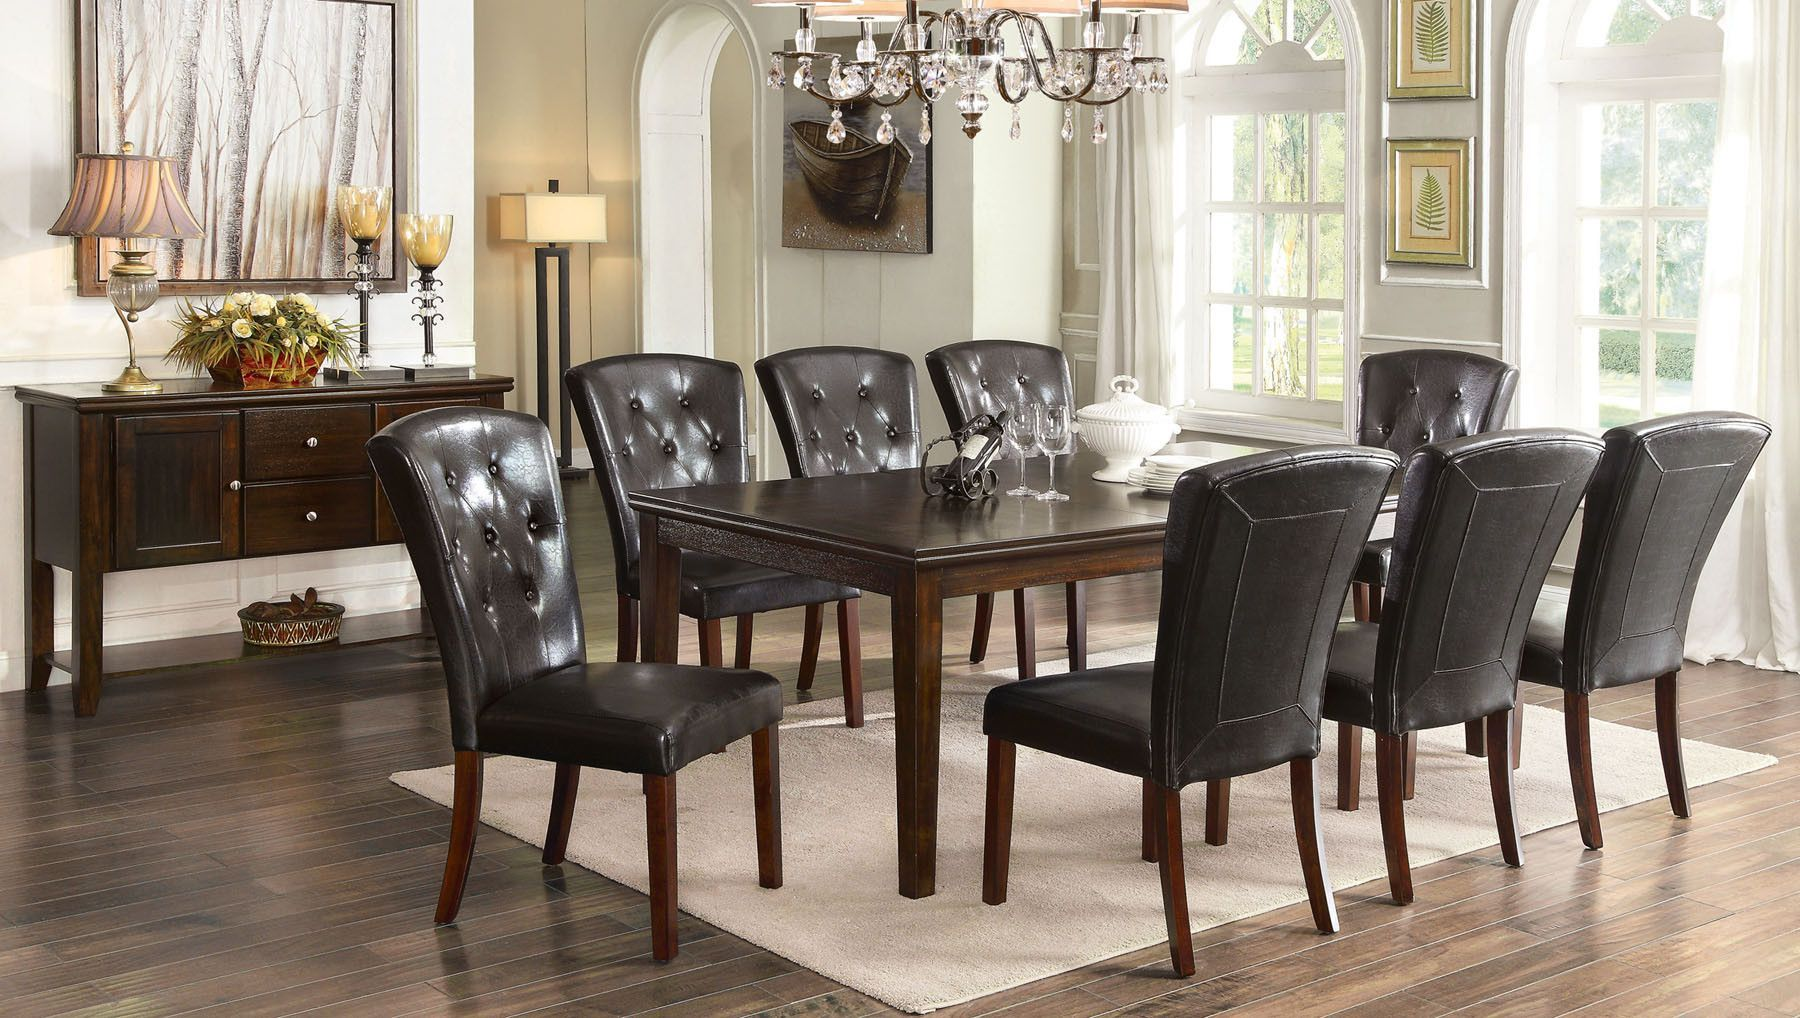 Woodmoor Dining Table Cm3333T  Products  Pinterest  Products Fascinating 9 Pcs Dining Room Set Inspiration Design